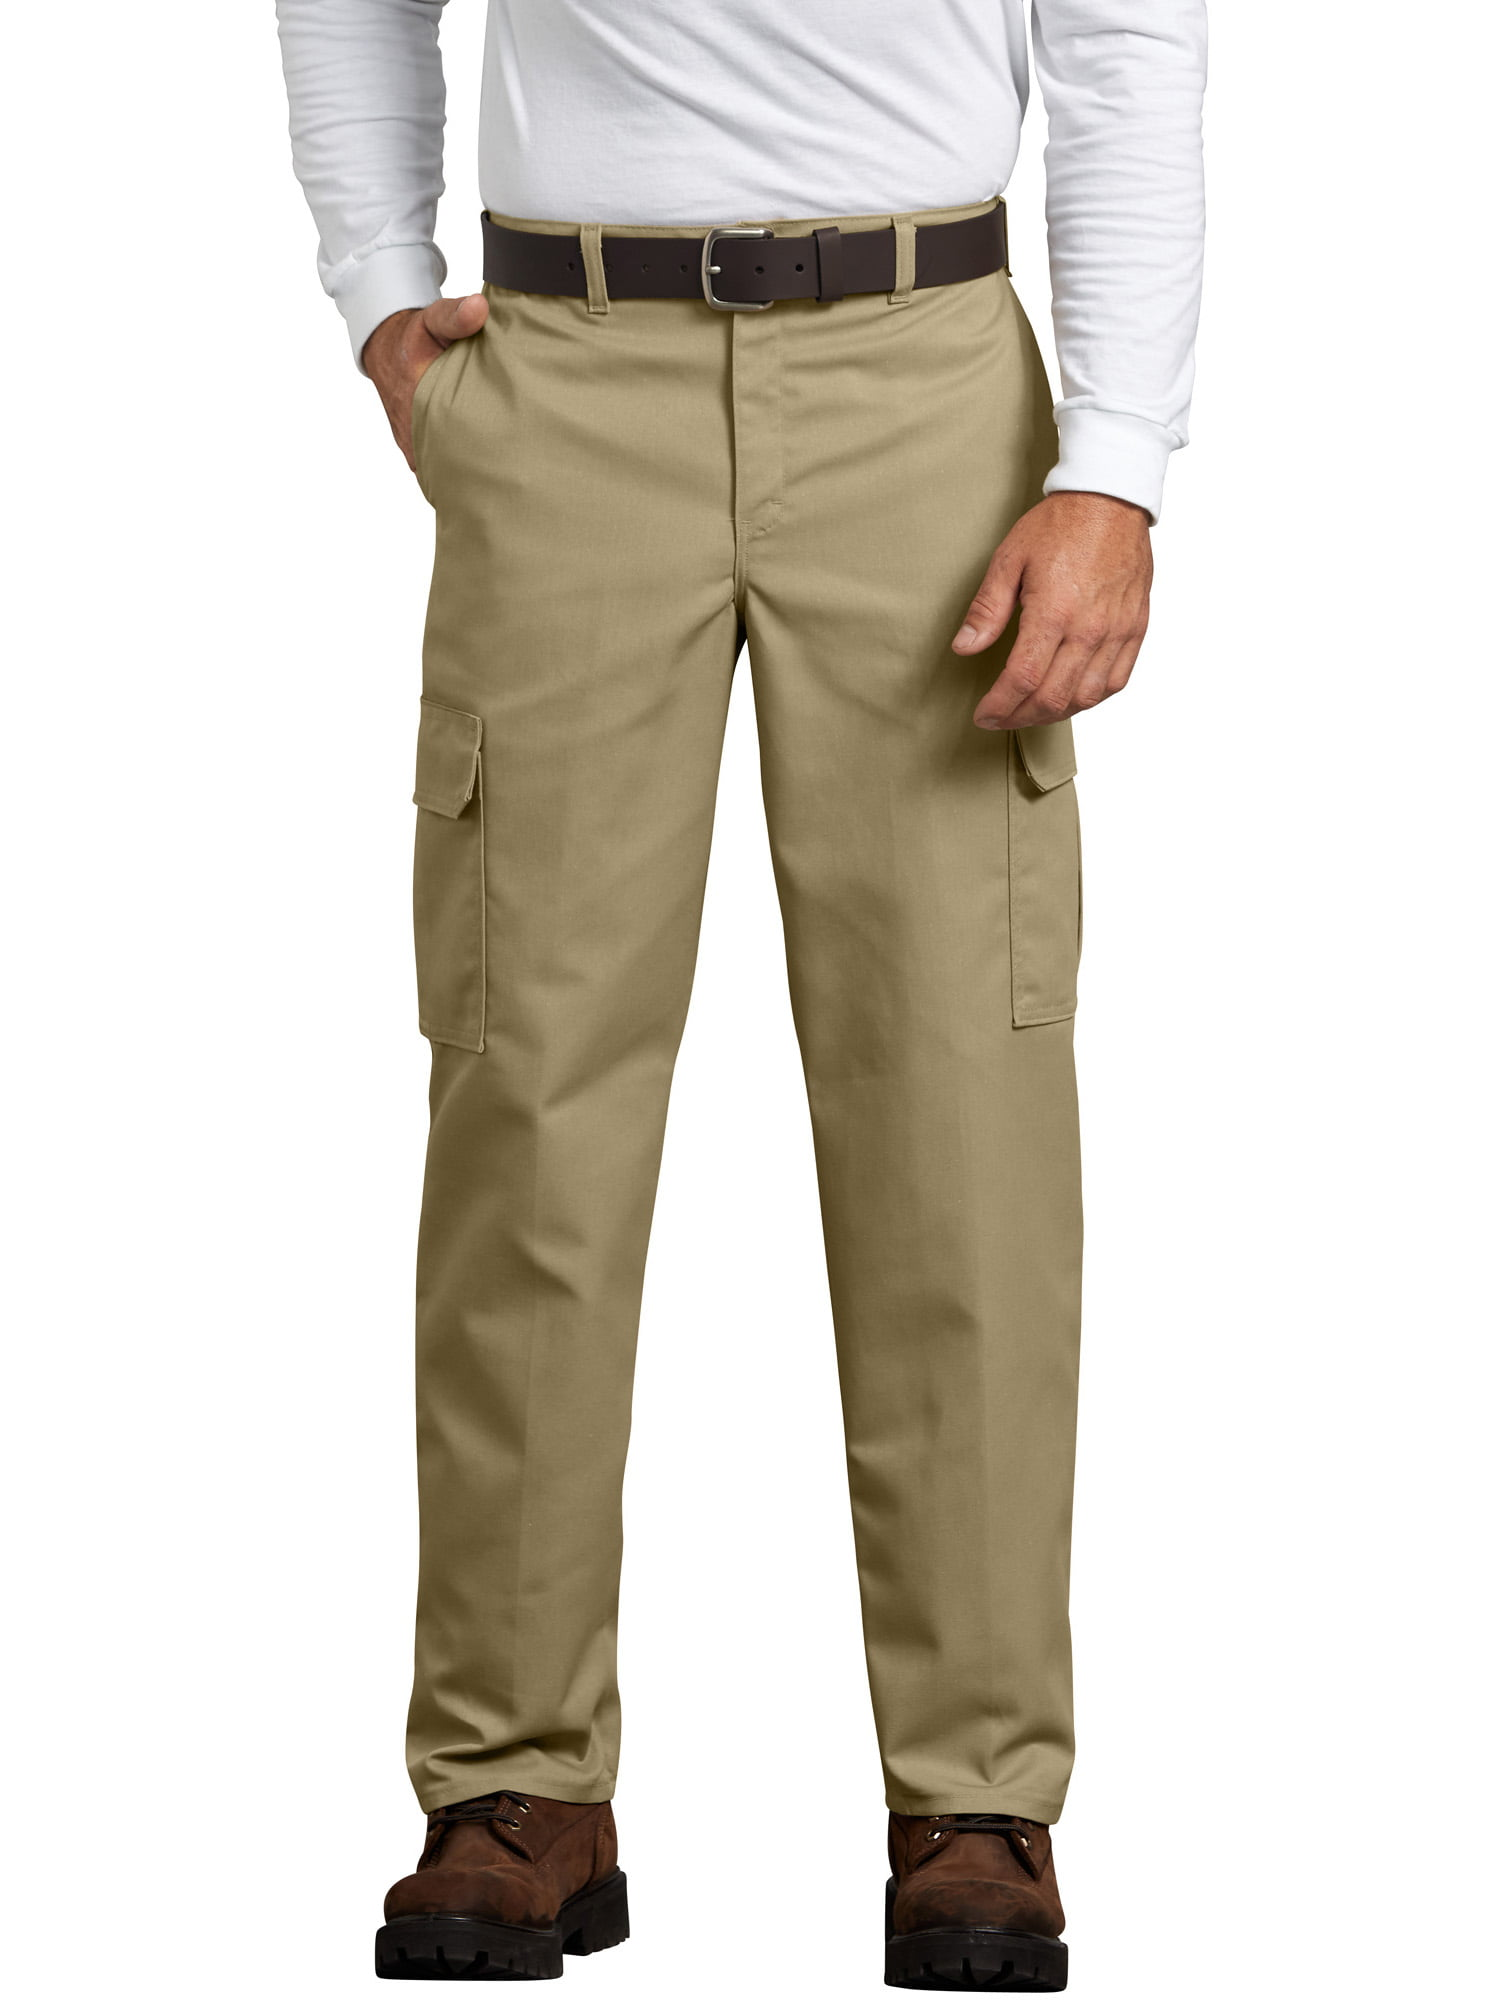 ab3b2d066e Genuine Dickies - Men's Relaxed Fit Flat Front Cargo Pant - Walmart.com